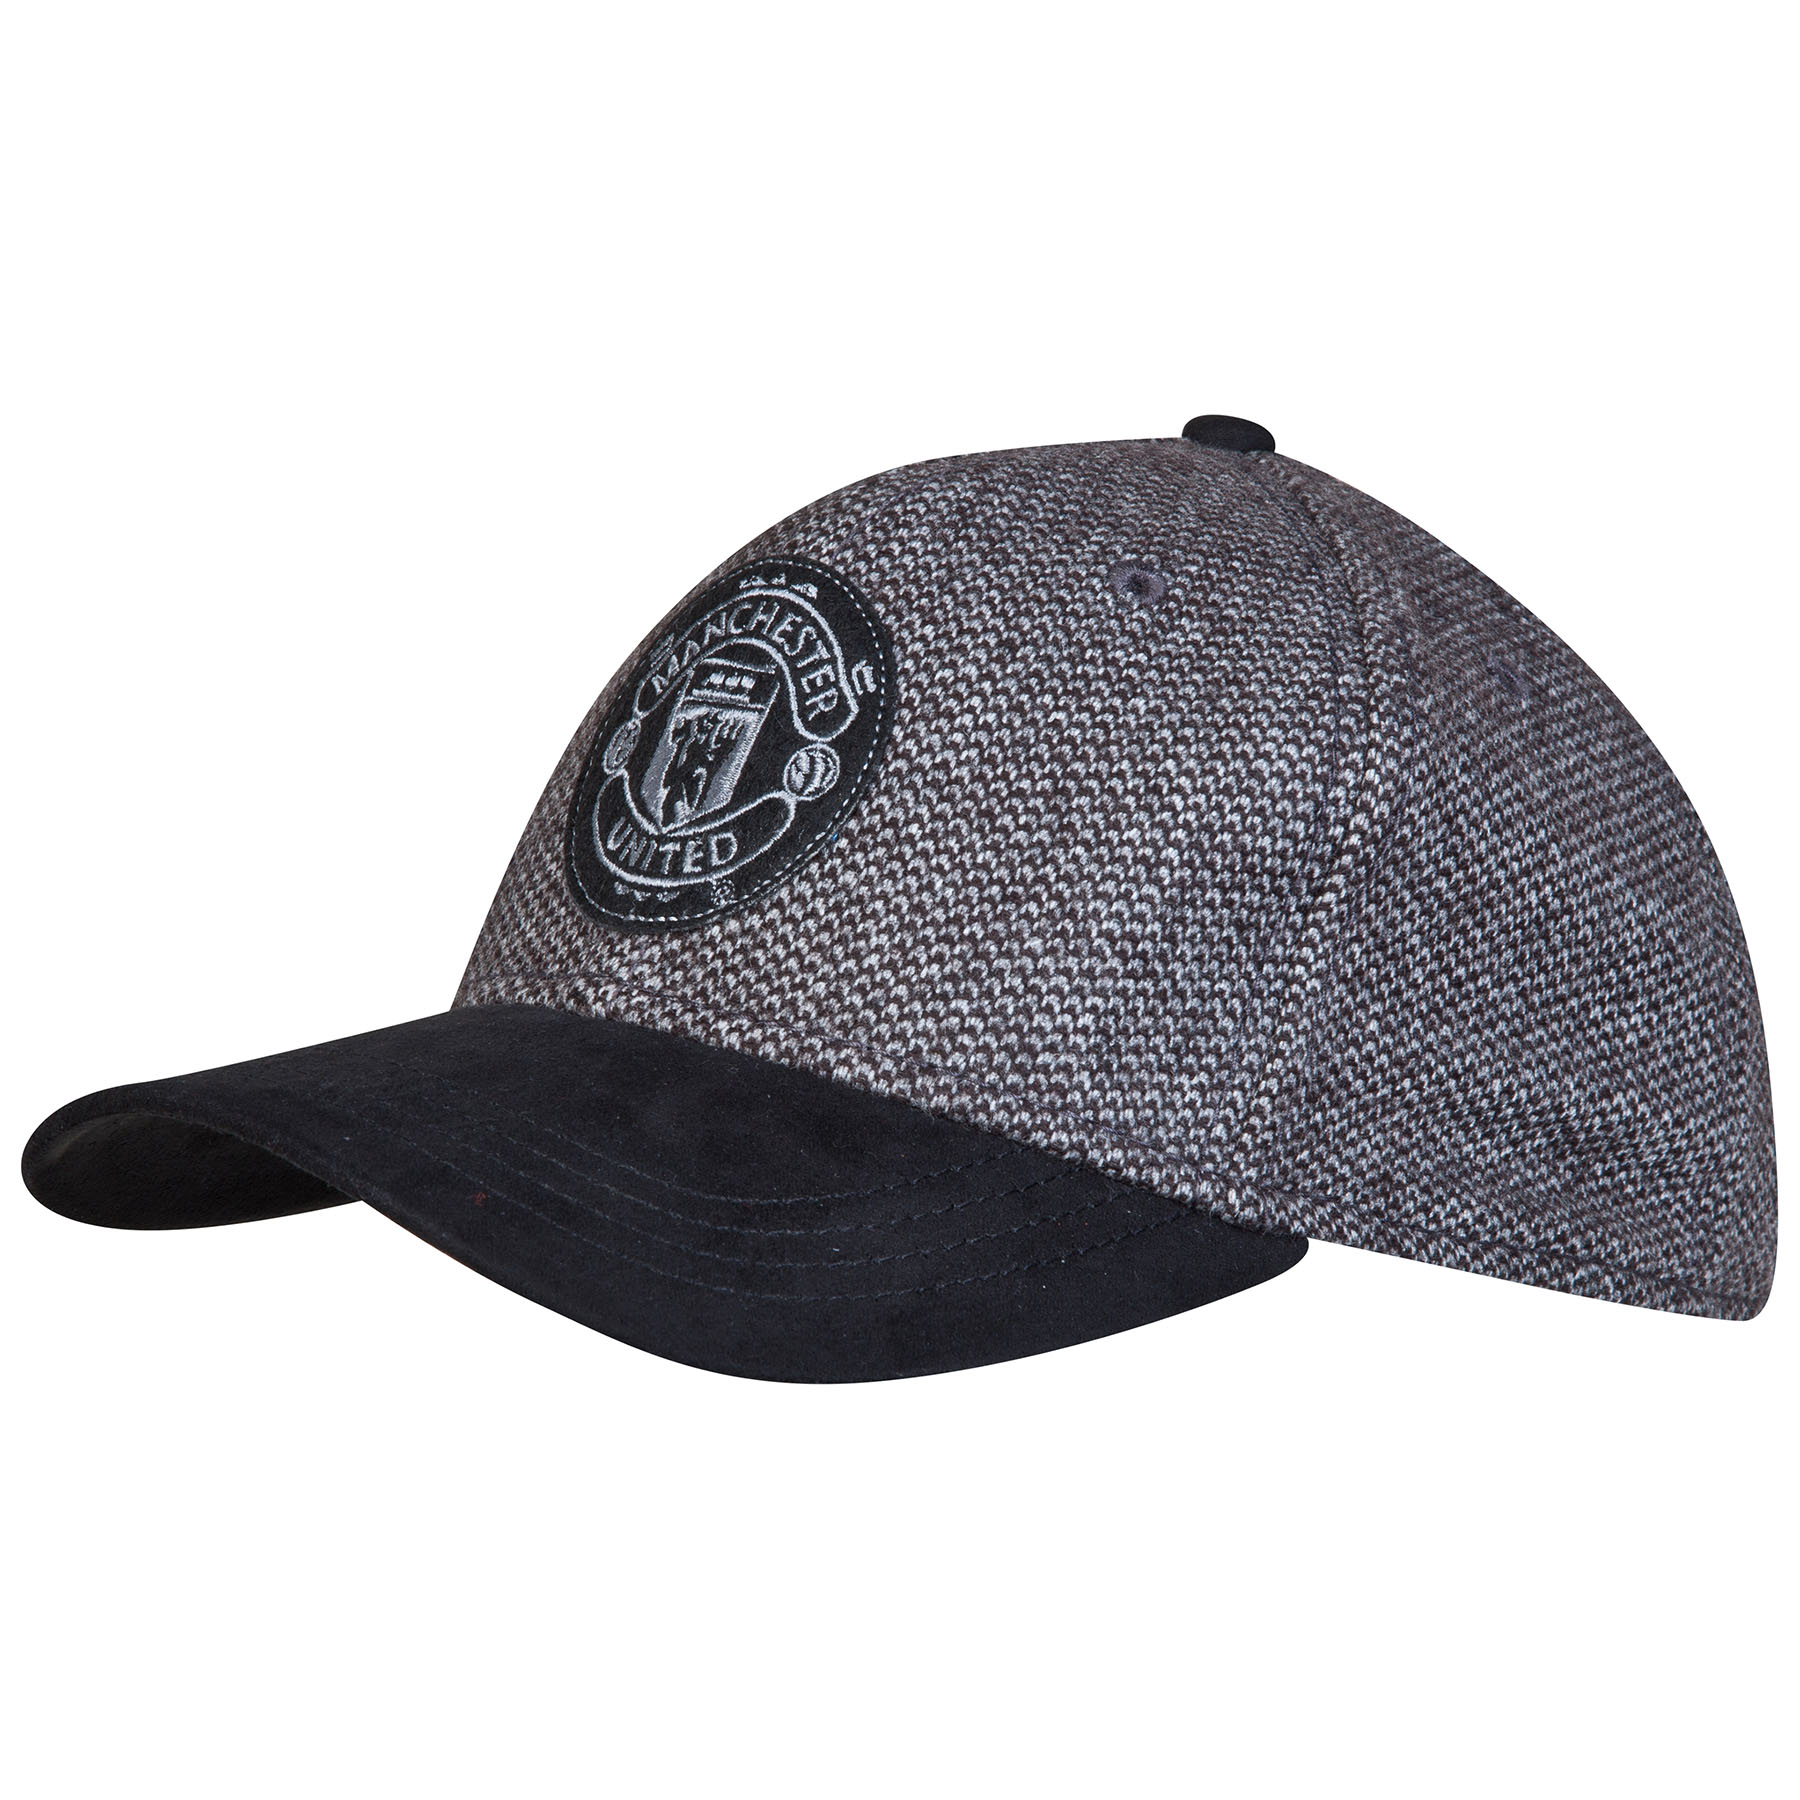 Manchester United Tweed Cap - Black - Adult